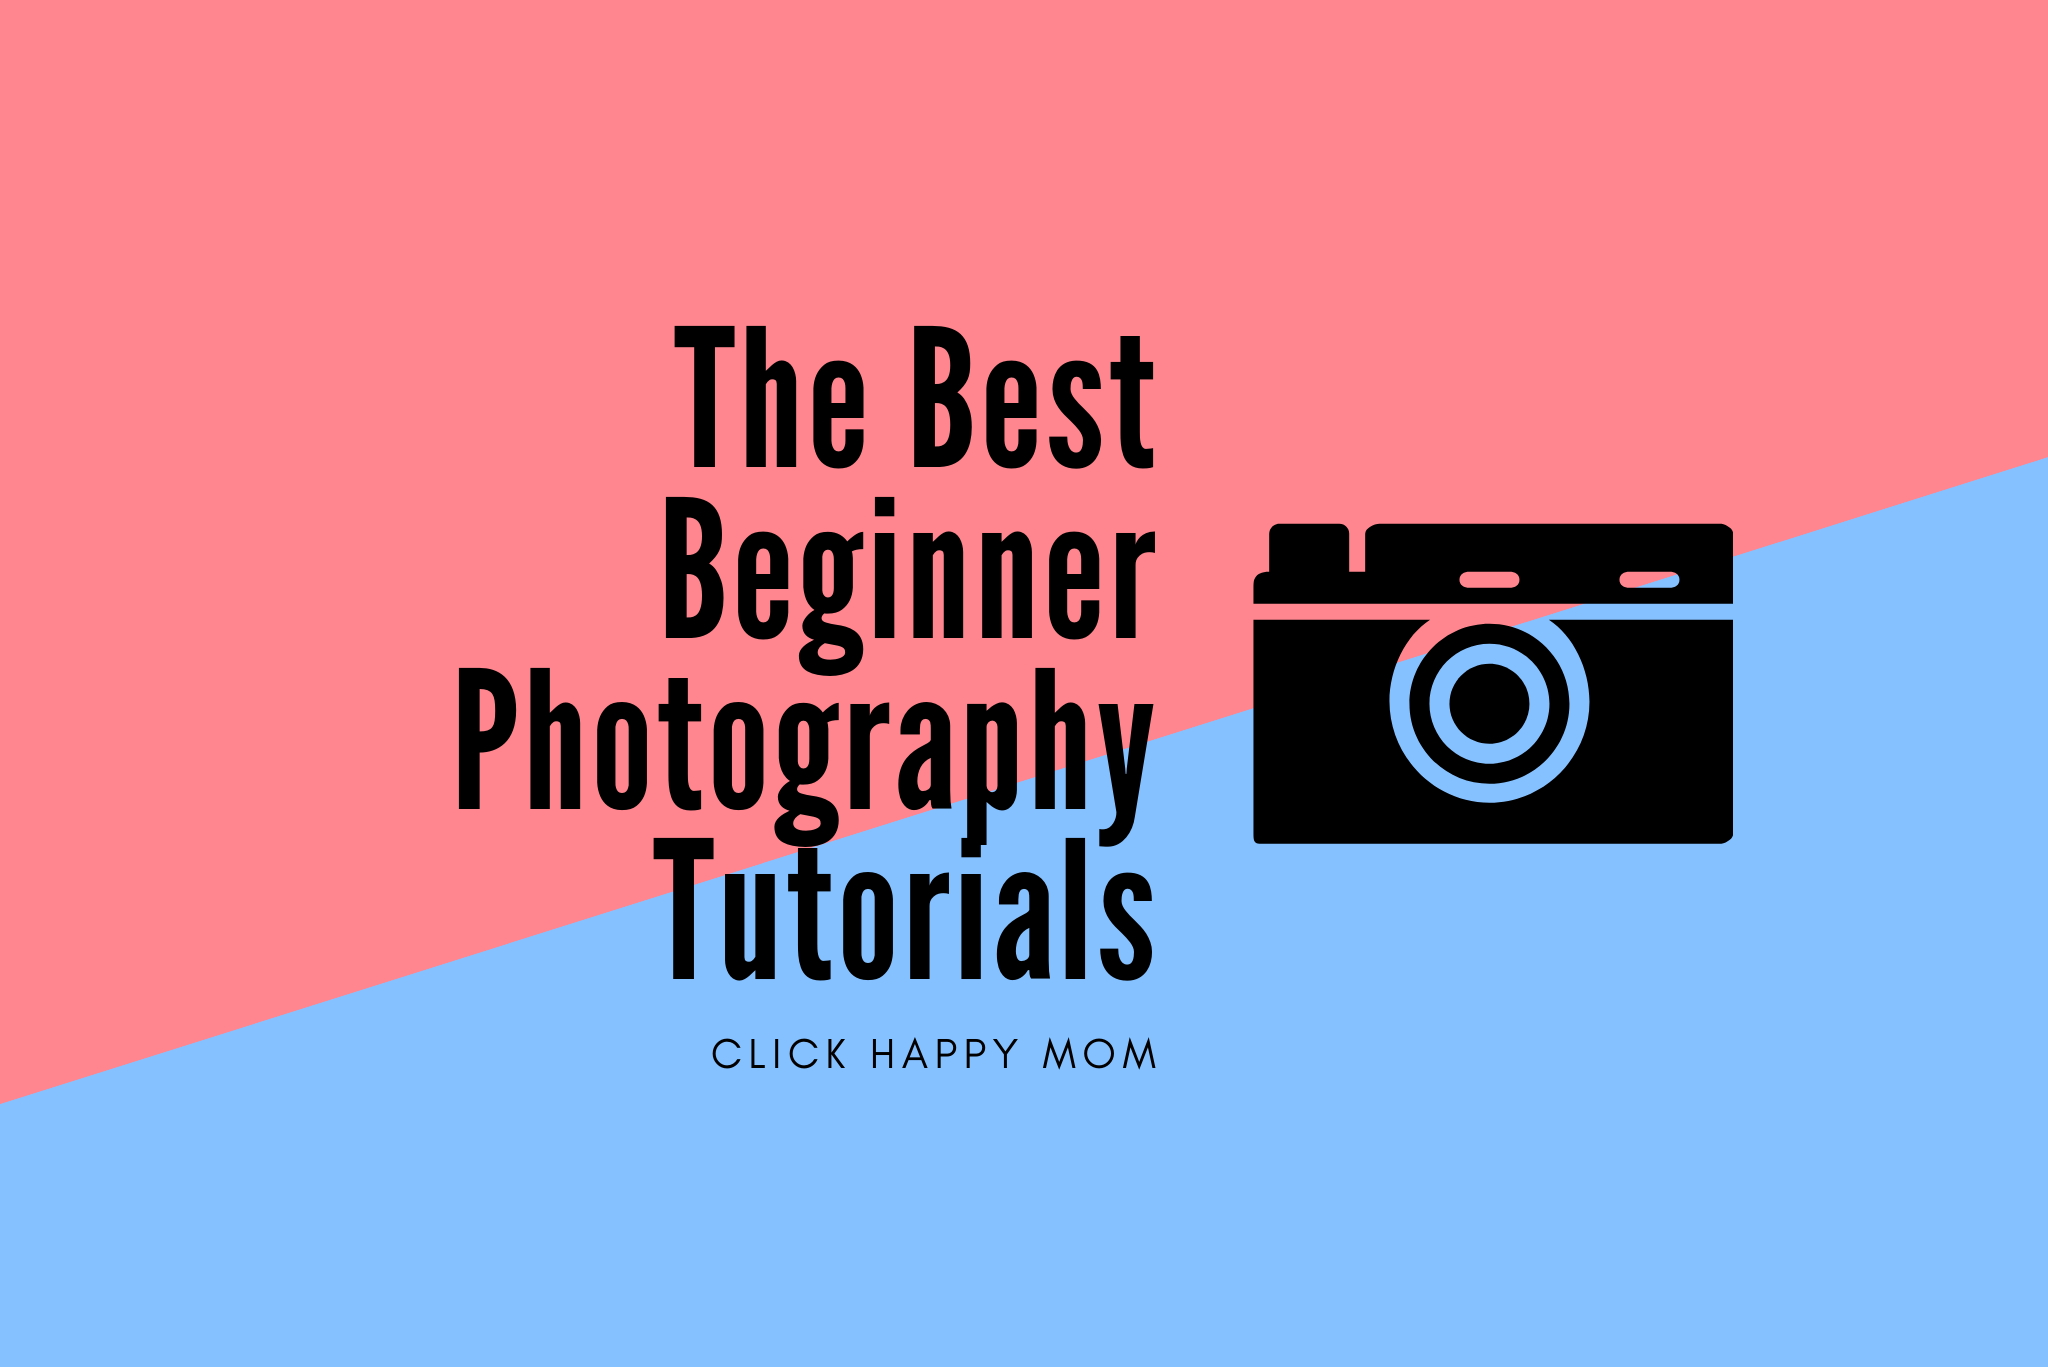 The Best Beginner Photography Tutorials